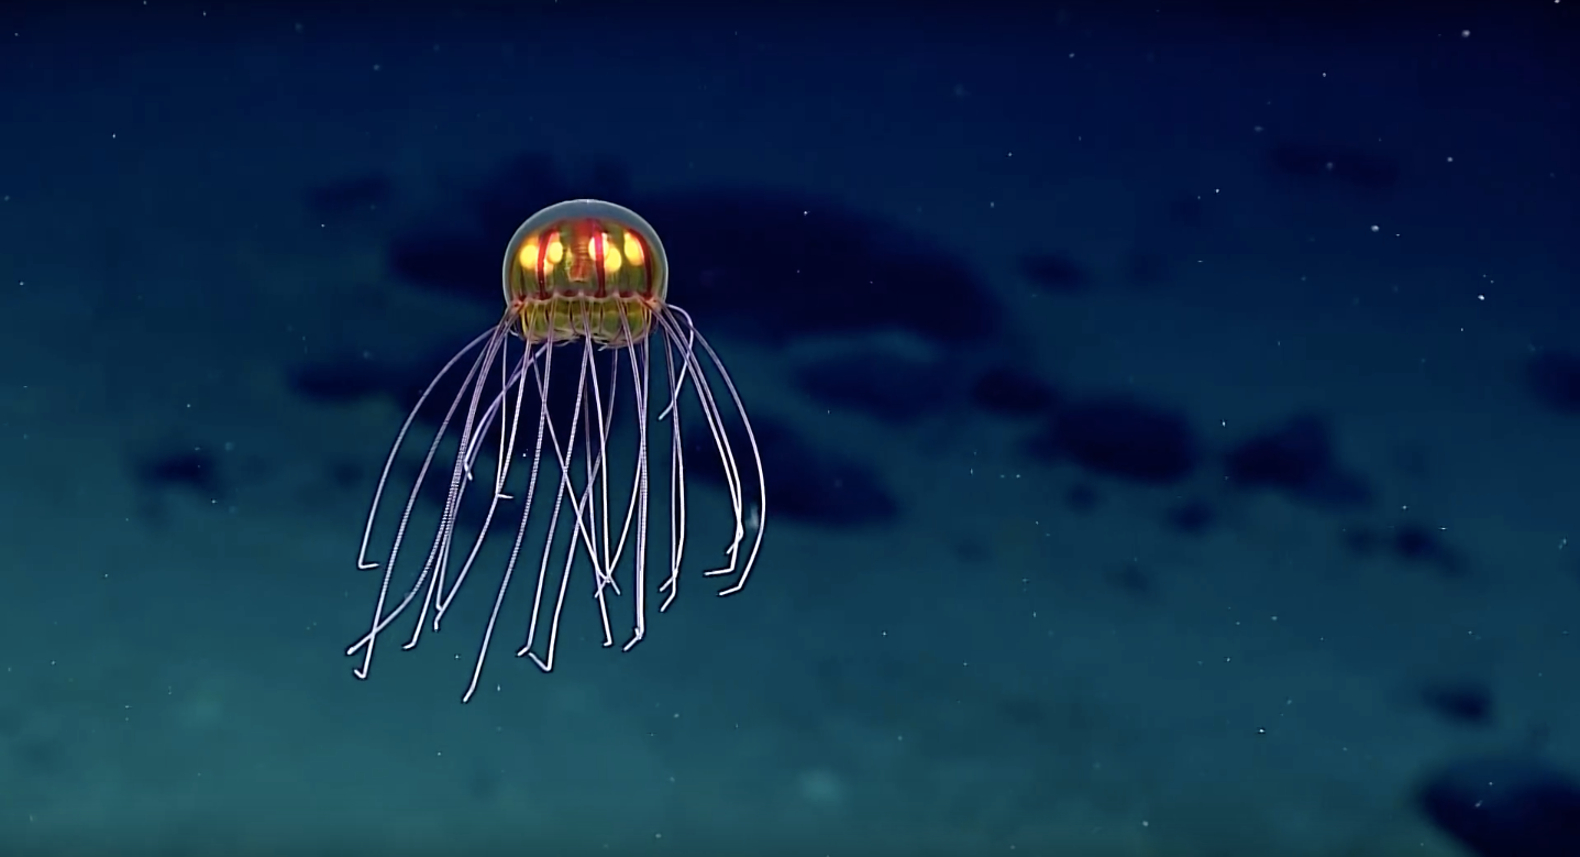 Hypnotic New Jellyfish Species Discovered 2 3 Miles Under